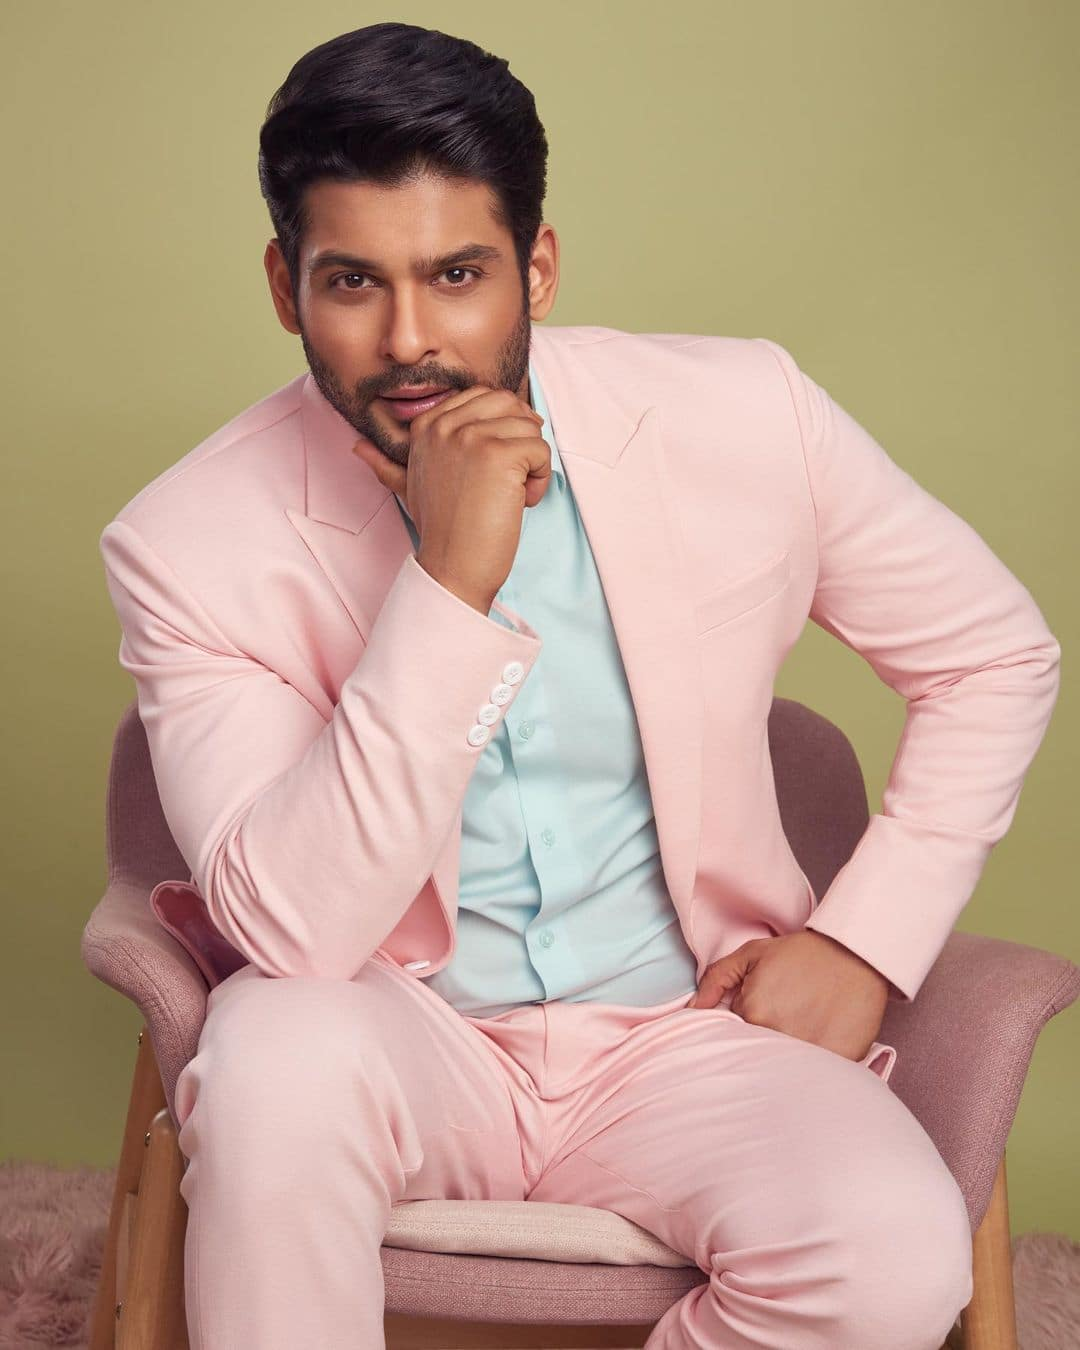 Sidharth Shukla Instagram Pics Before His Death: